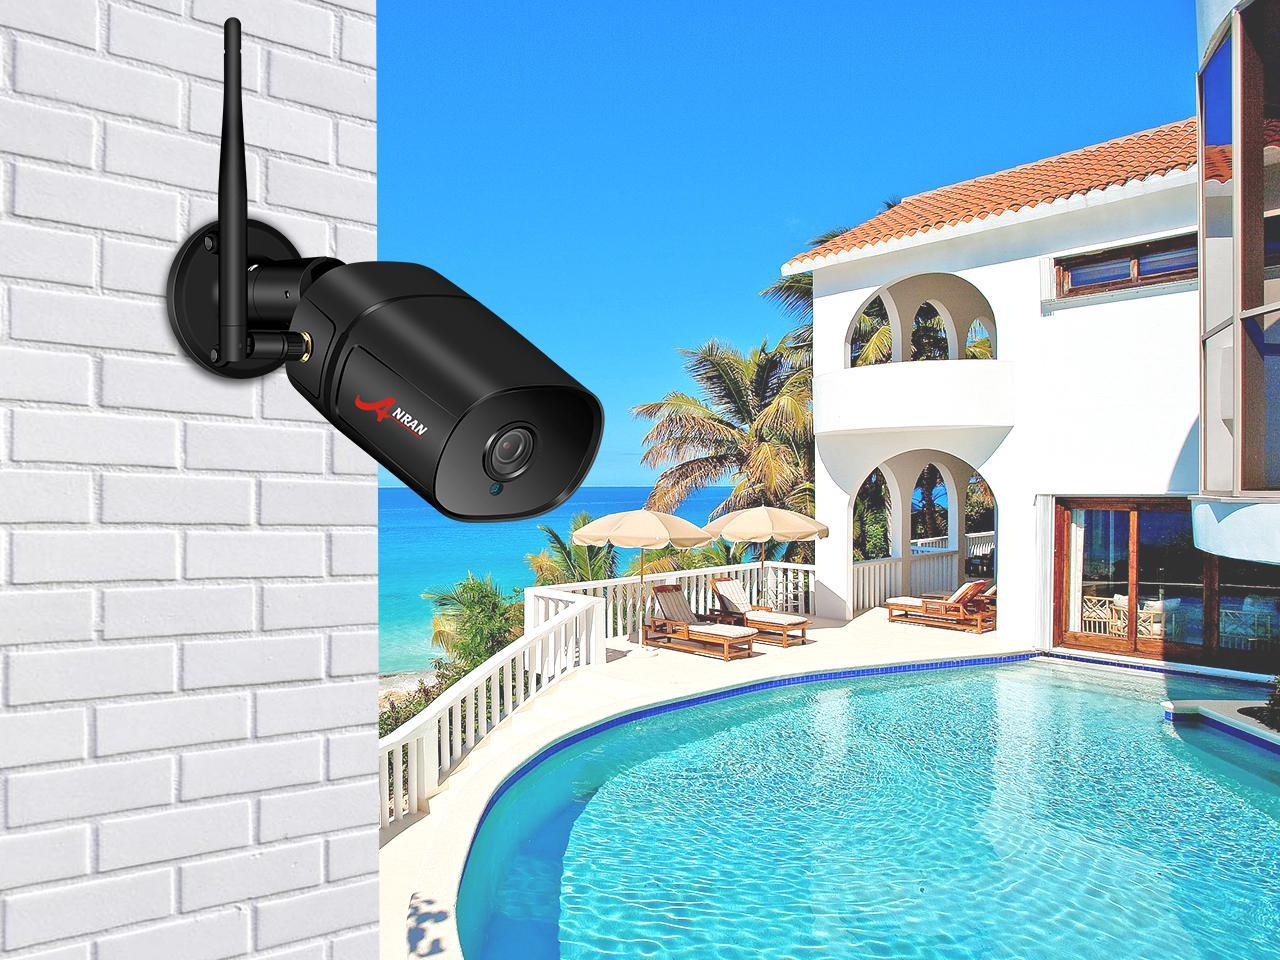 c0_outdoor_bullet_Wi-Fi_camera